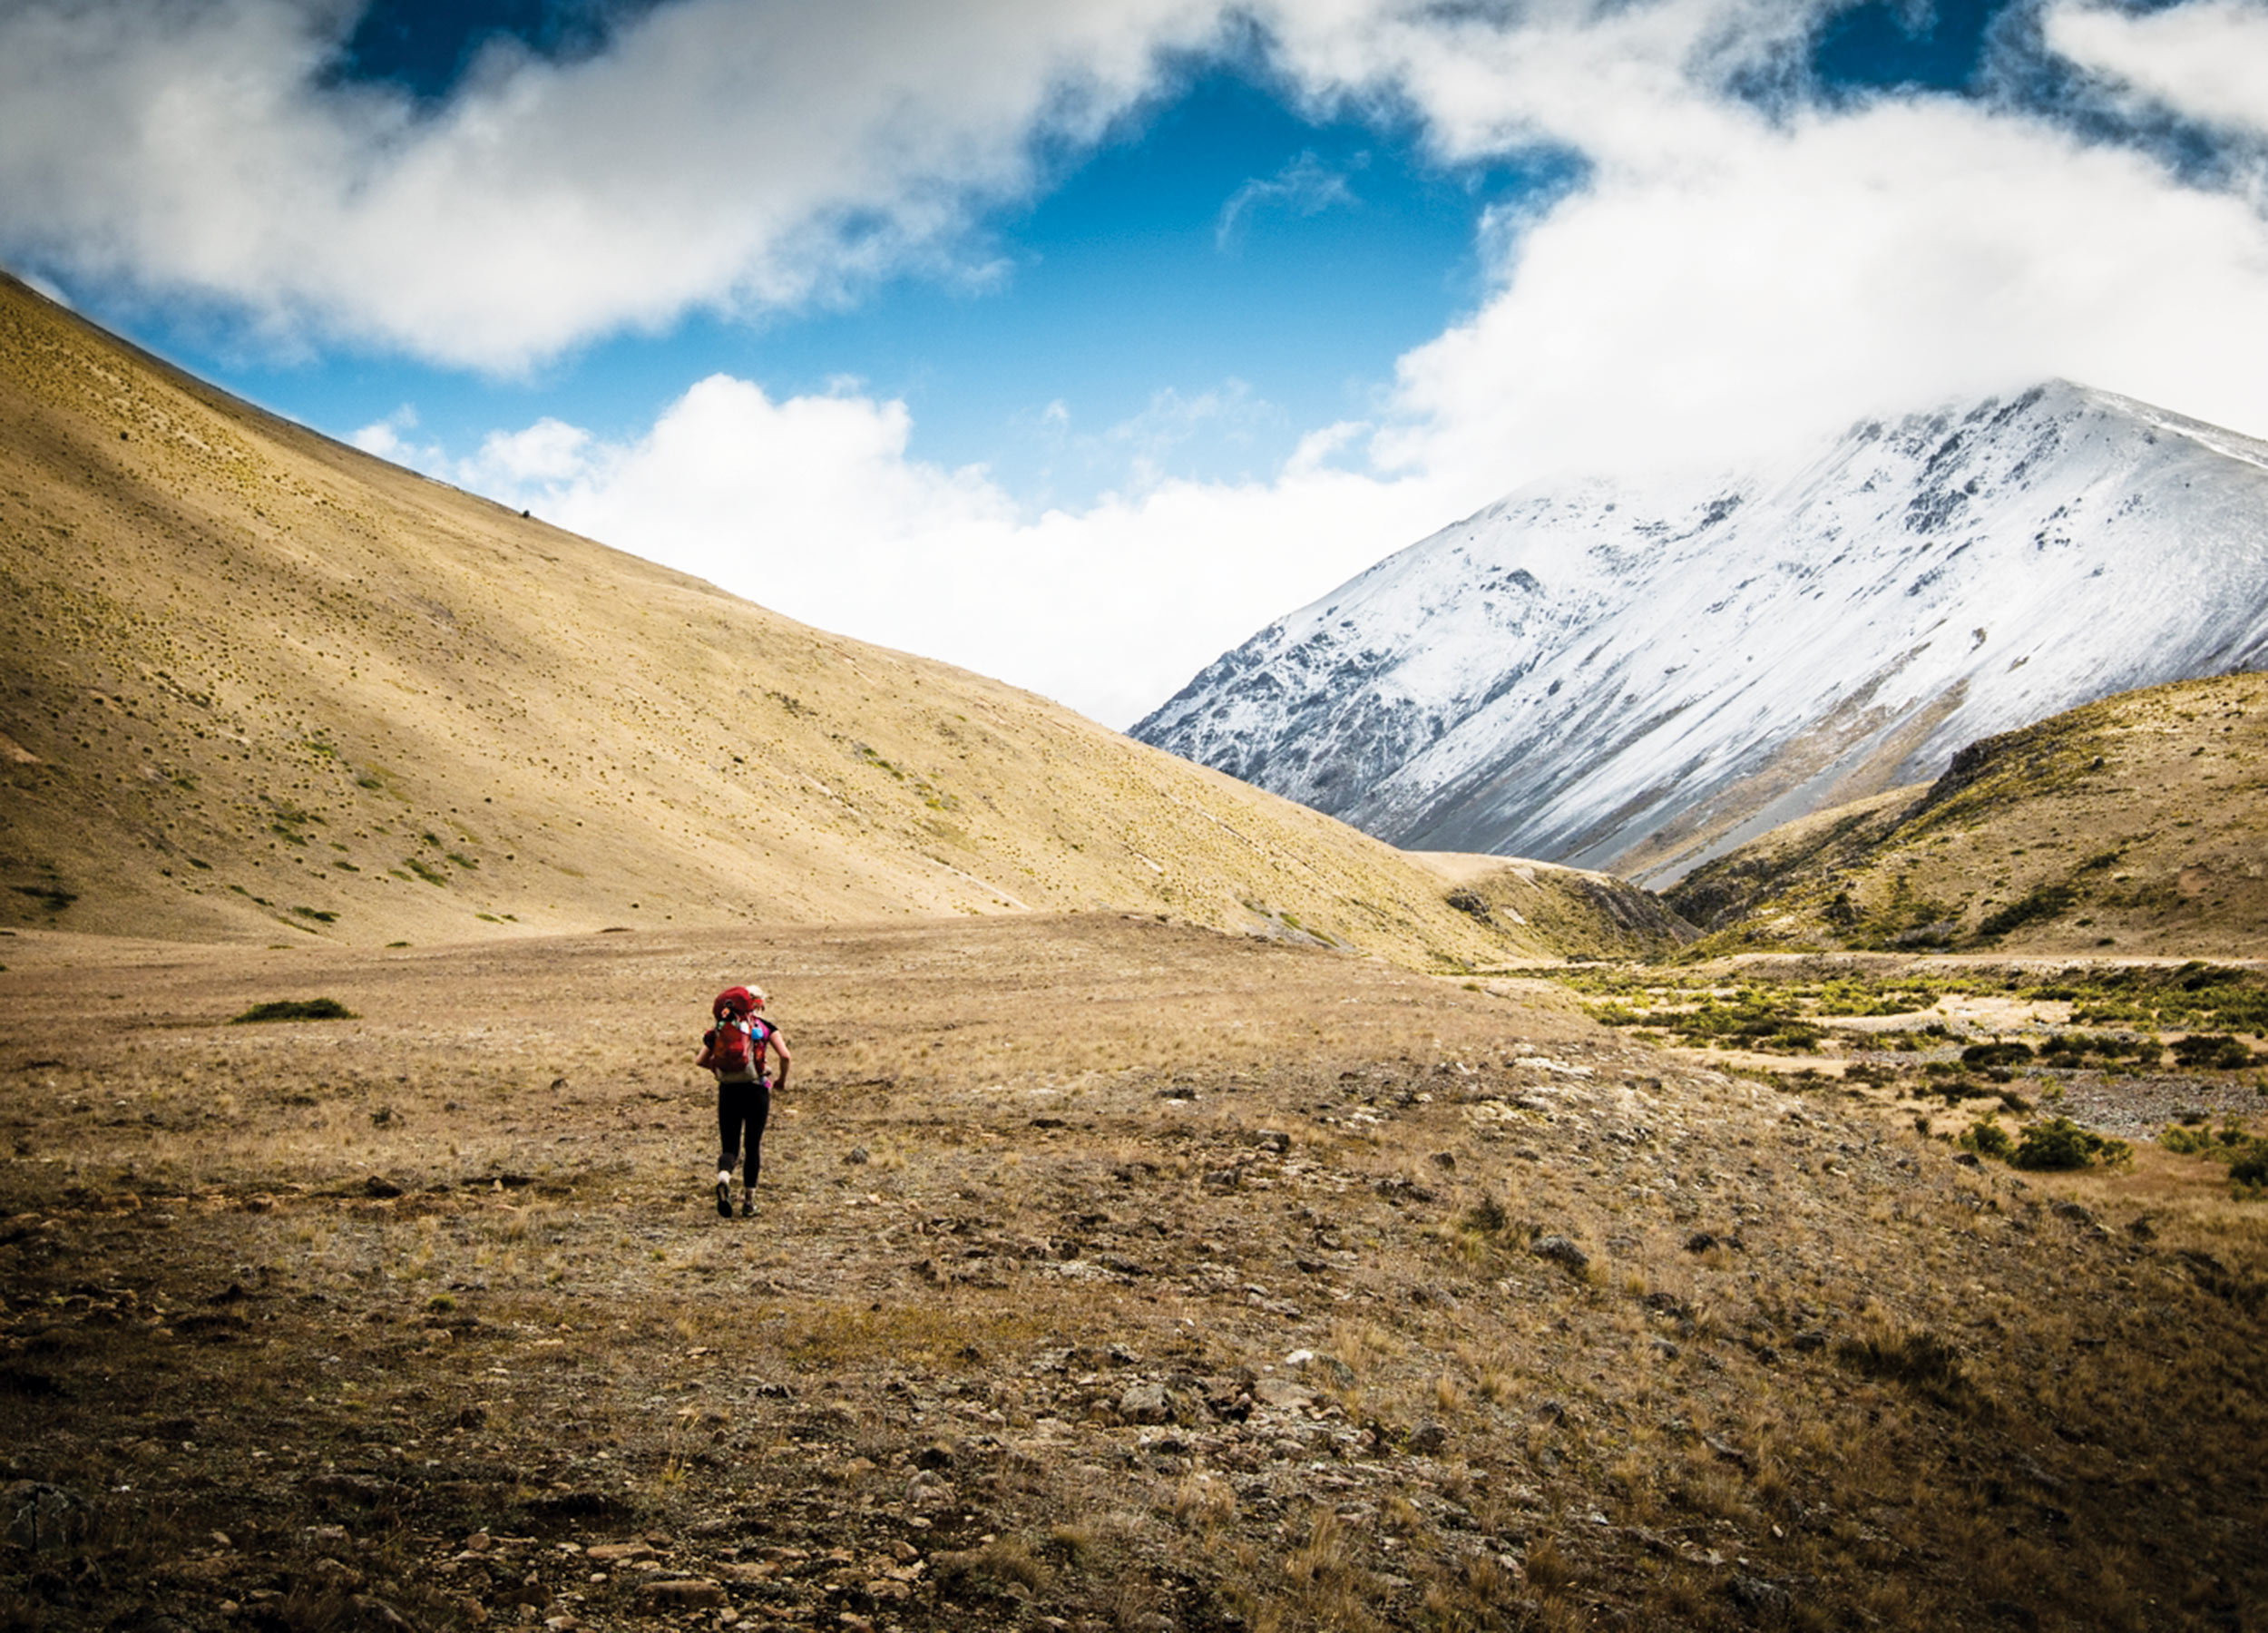 Woman with backpack traversing barren landscape with mountains ahead